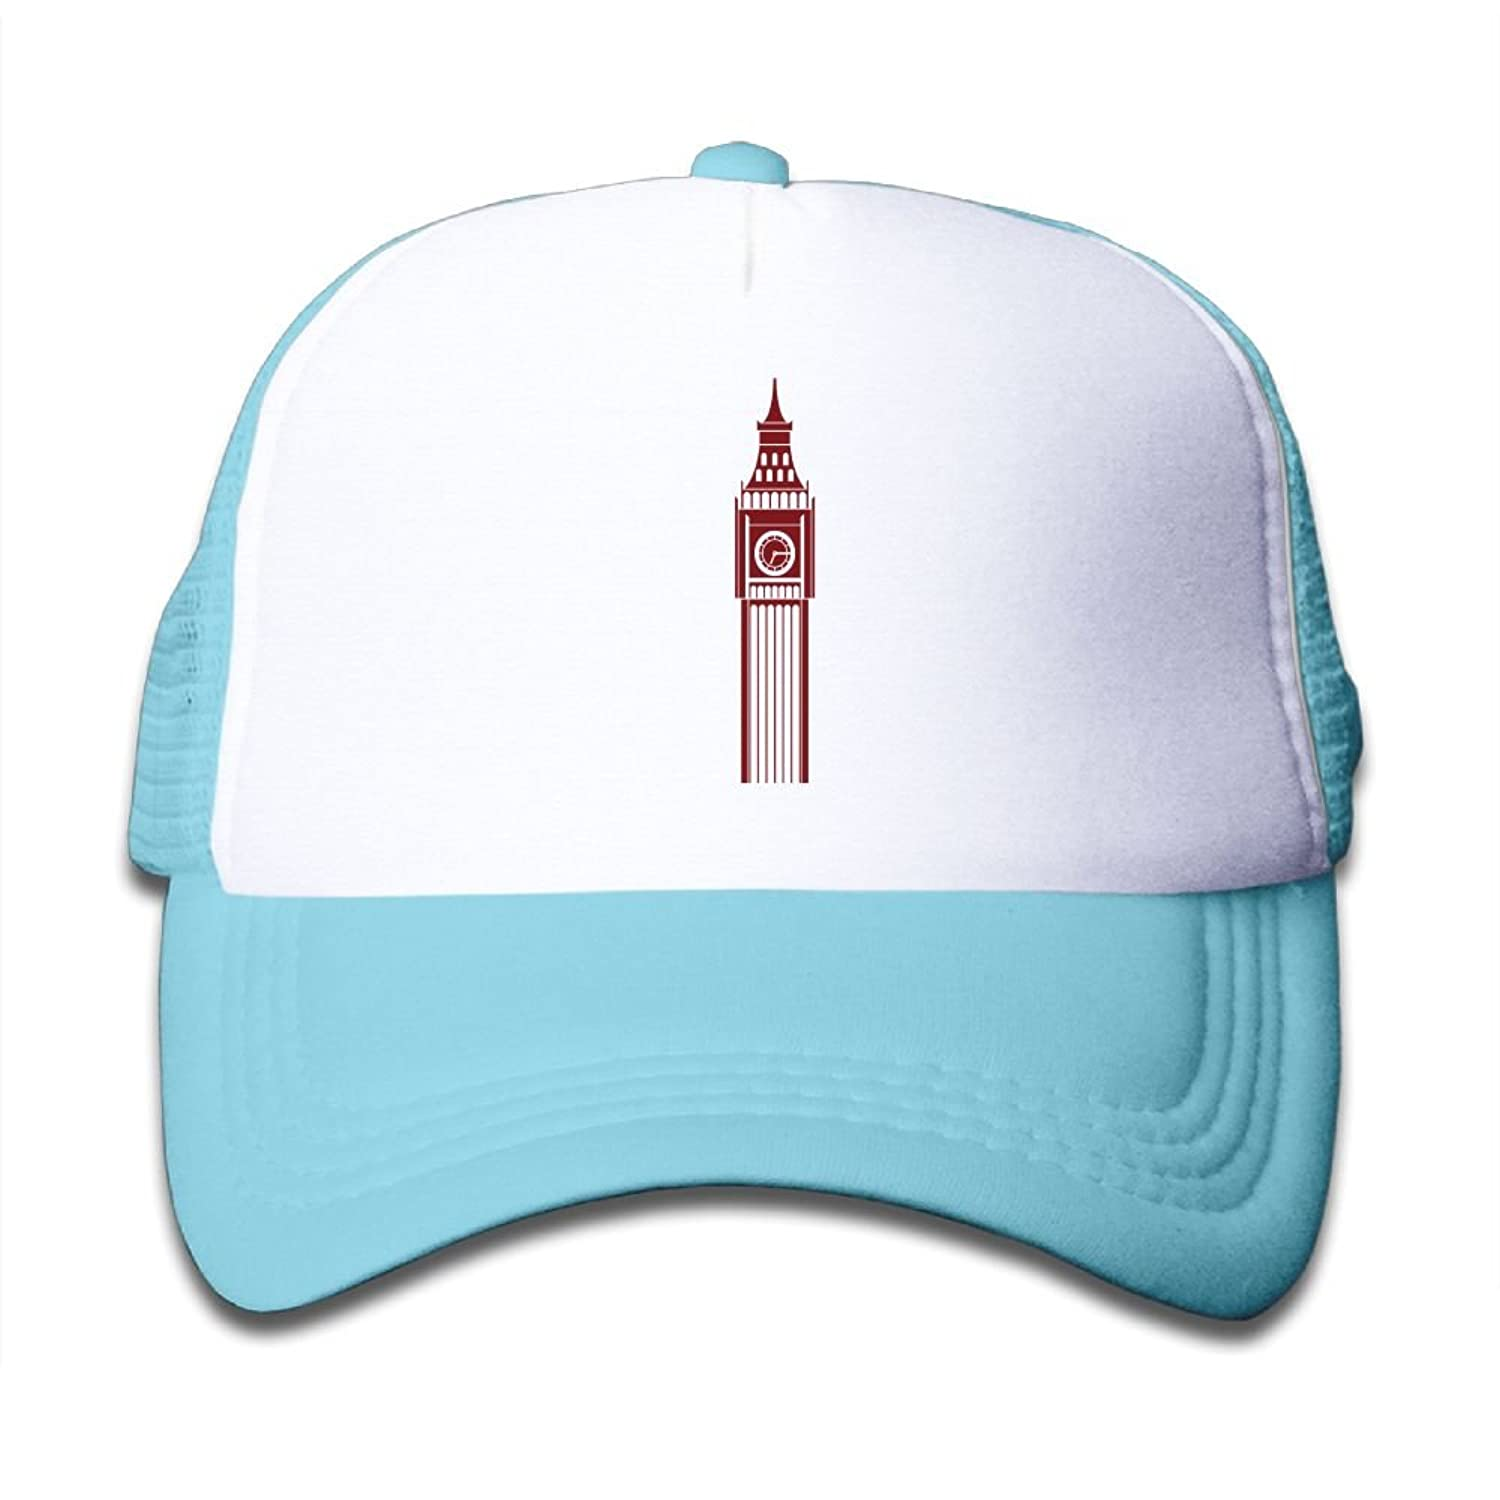 Big Ben London Boy Kids Adjustable Foamnation Caps Mesh Baseball Hats supplies